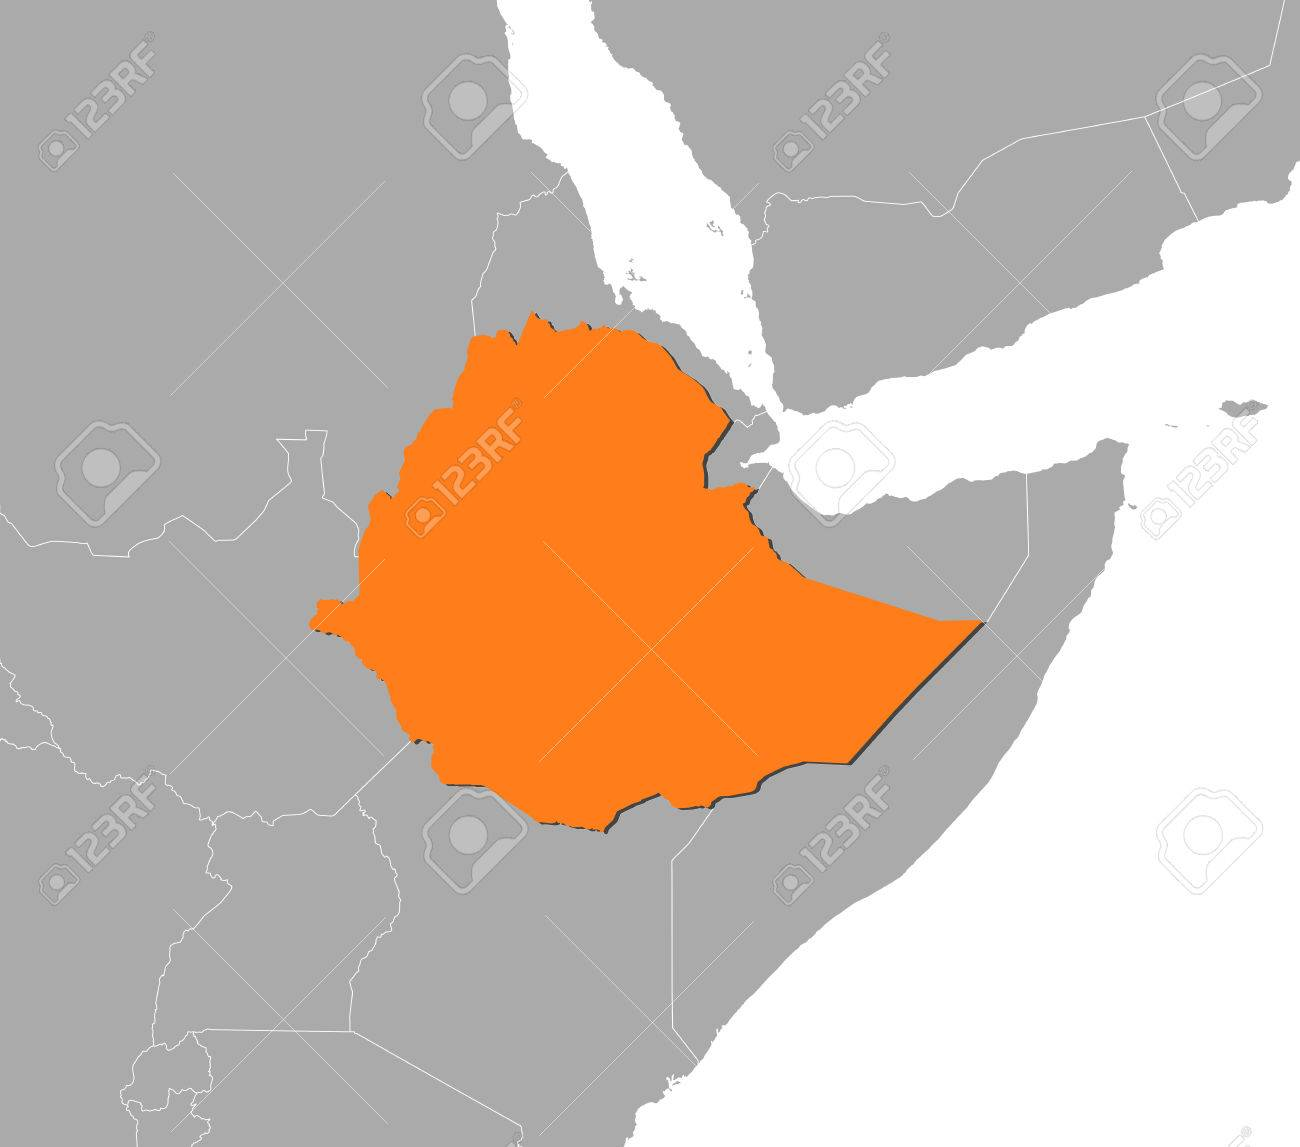 Map of ethiopia and nearby countries ethiopia is highlighted map of ethiopia and nearby countries ethiopia is highlighted in orange stock vector gumiabroncs Gallery